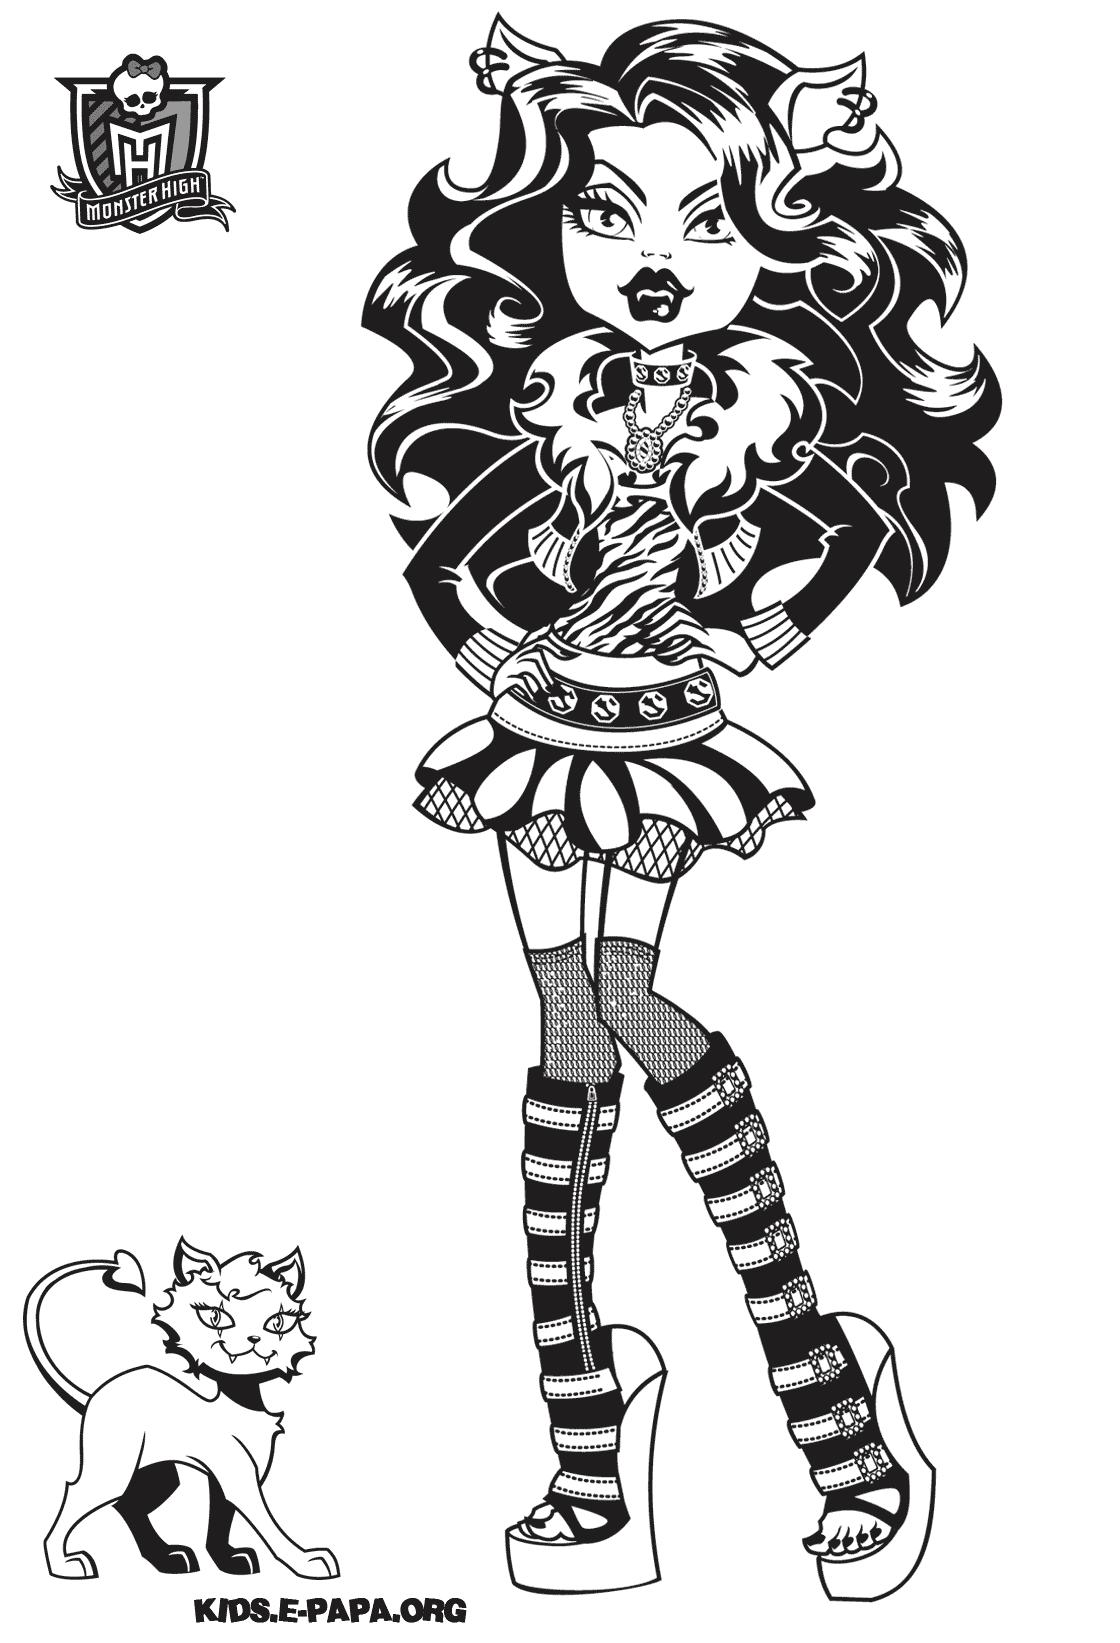 monster high drawing pictures monster high cleo dance coloring page free printable monster drawing high pictures